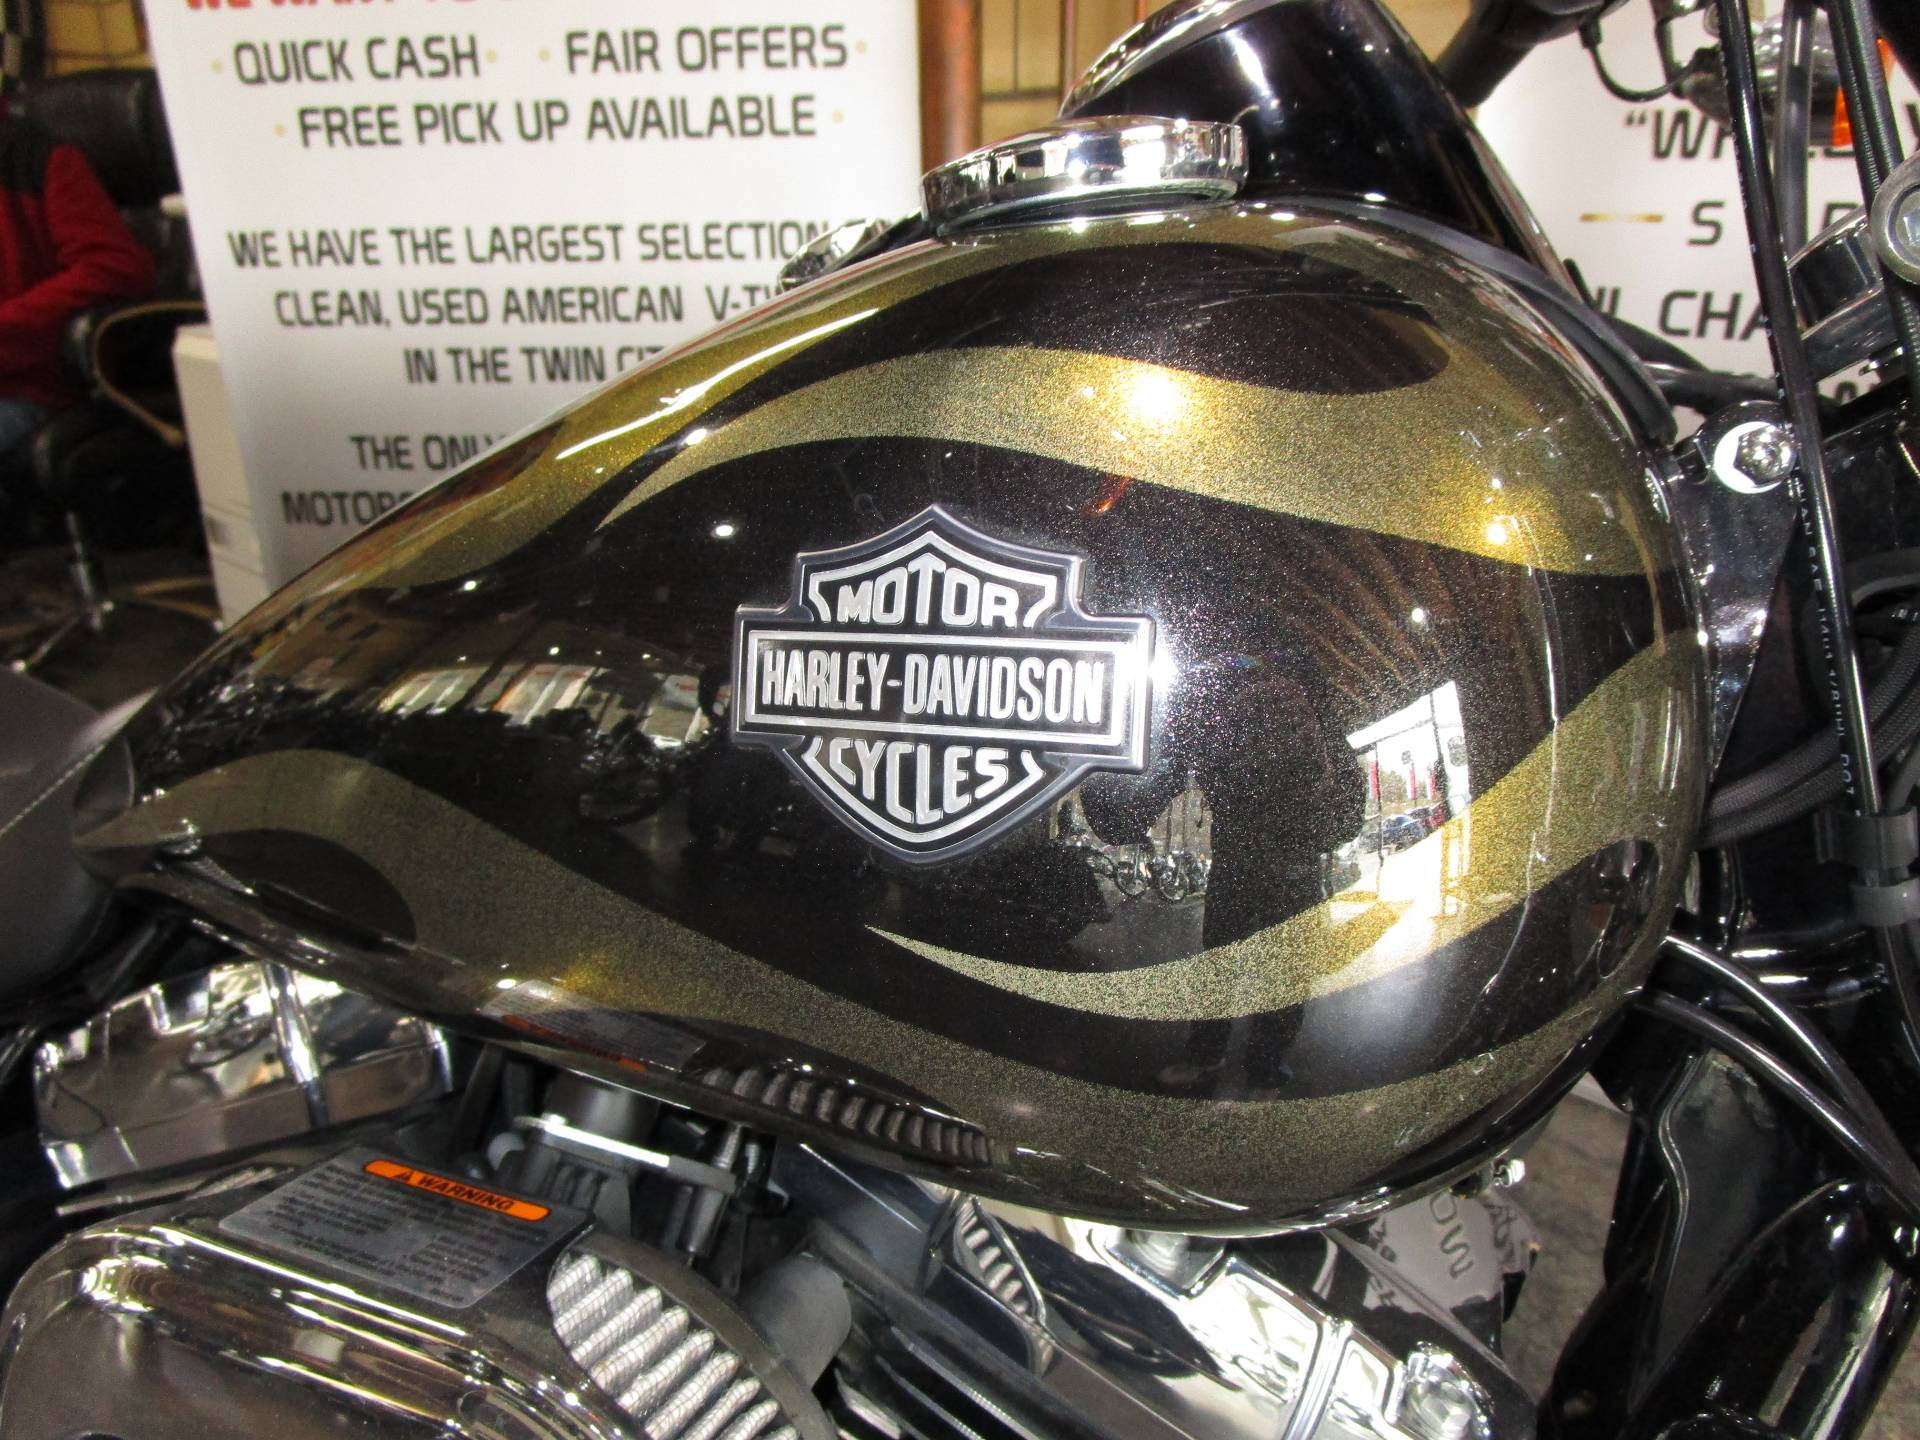 2017 Harley-Davidson Wide Glide in South Saint Paul, Minnesota - Photo 3